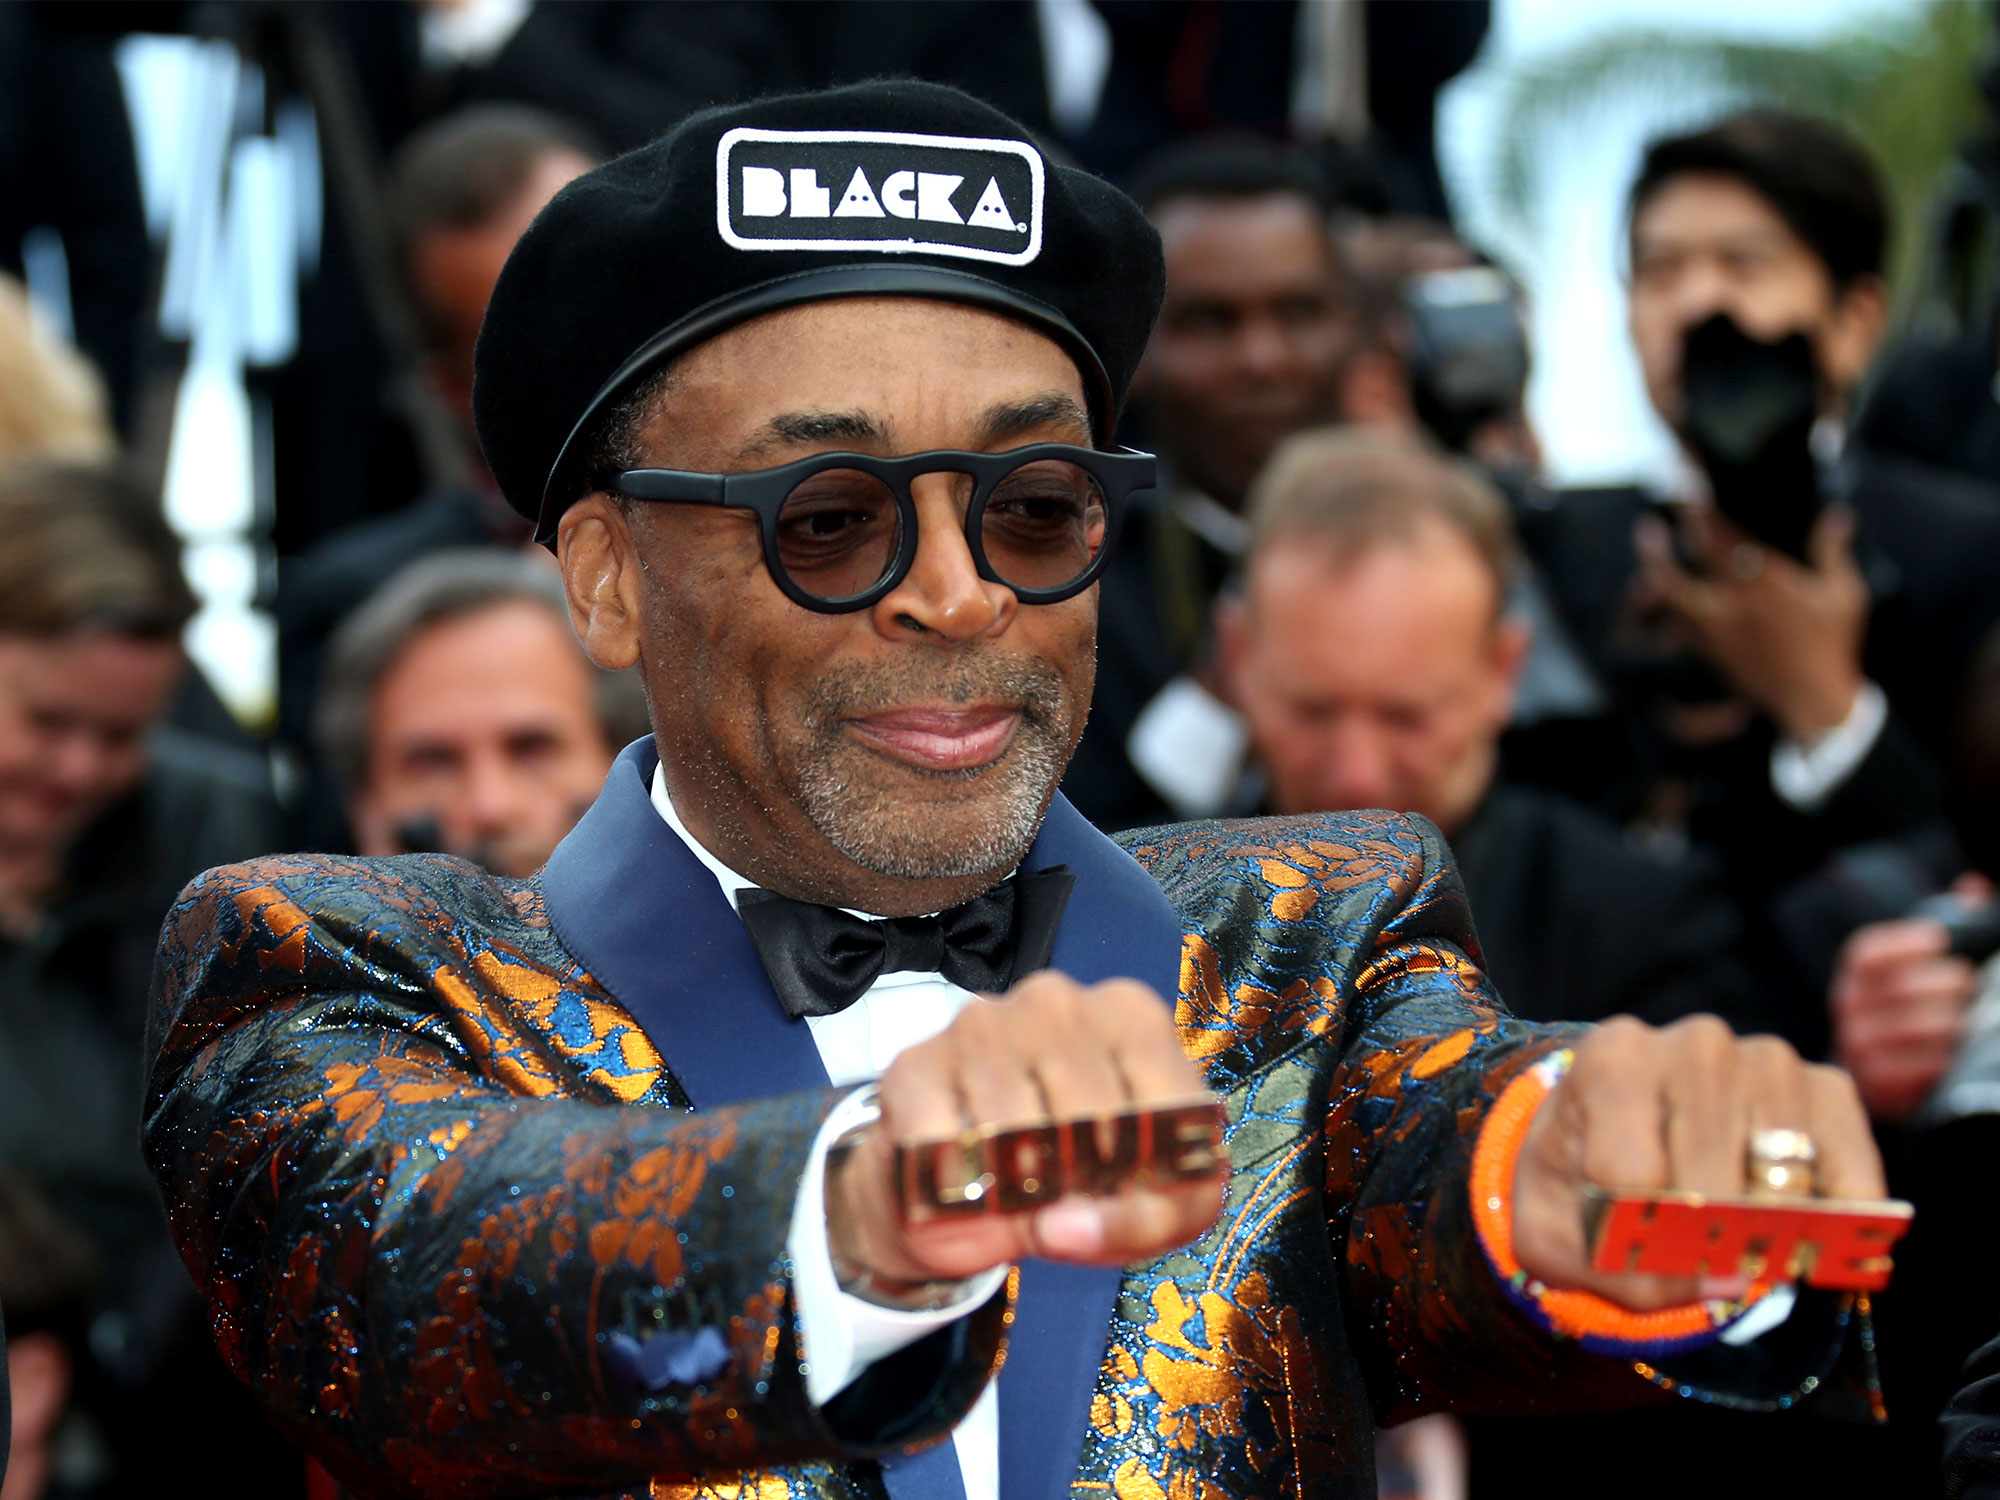 What can we expect from President Spike Lee at Cannes 2020?, Wustoo